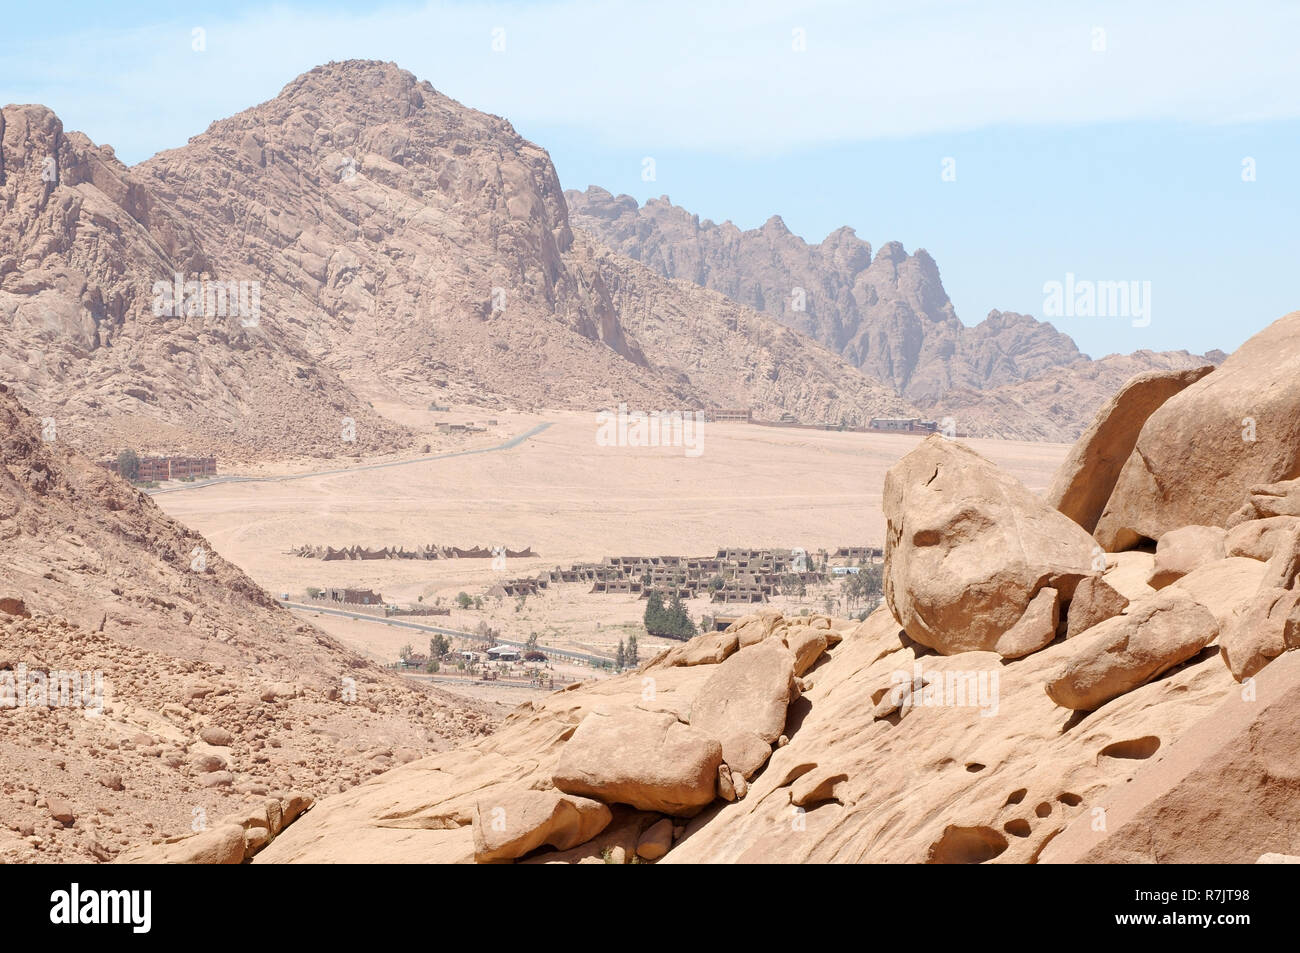 Sinai mountain range, Sinai Peninsula, South Sinai Governorate, Egypt - Stock Image